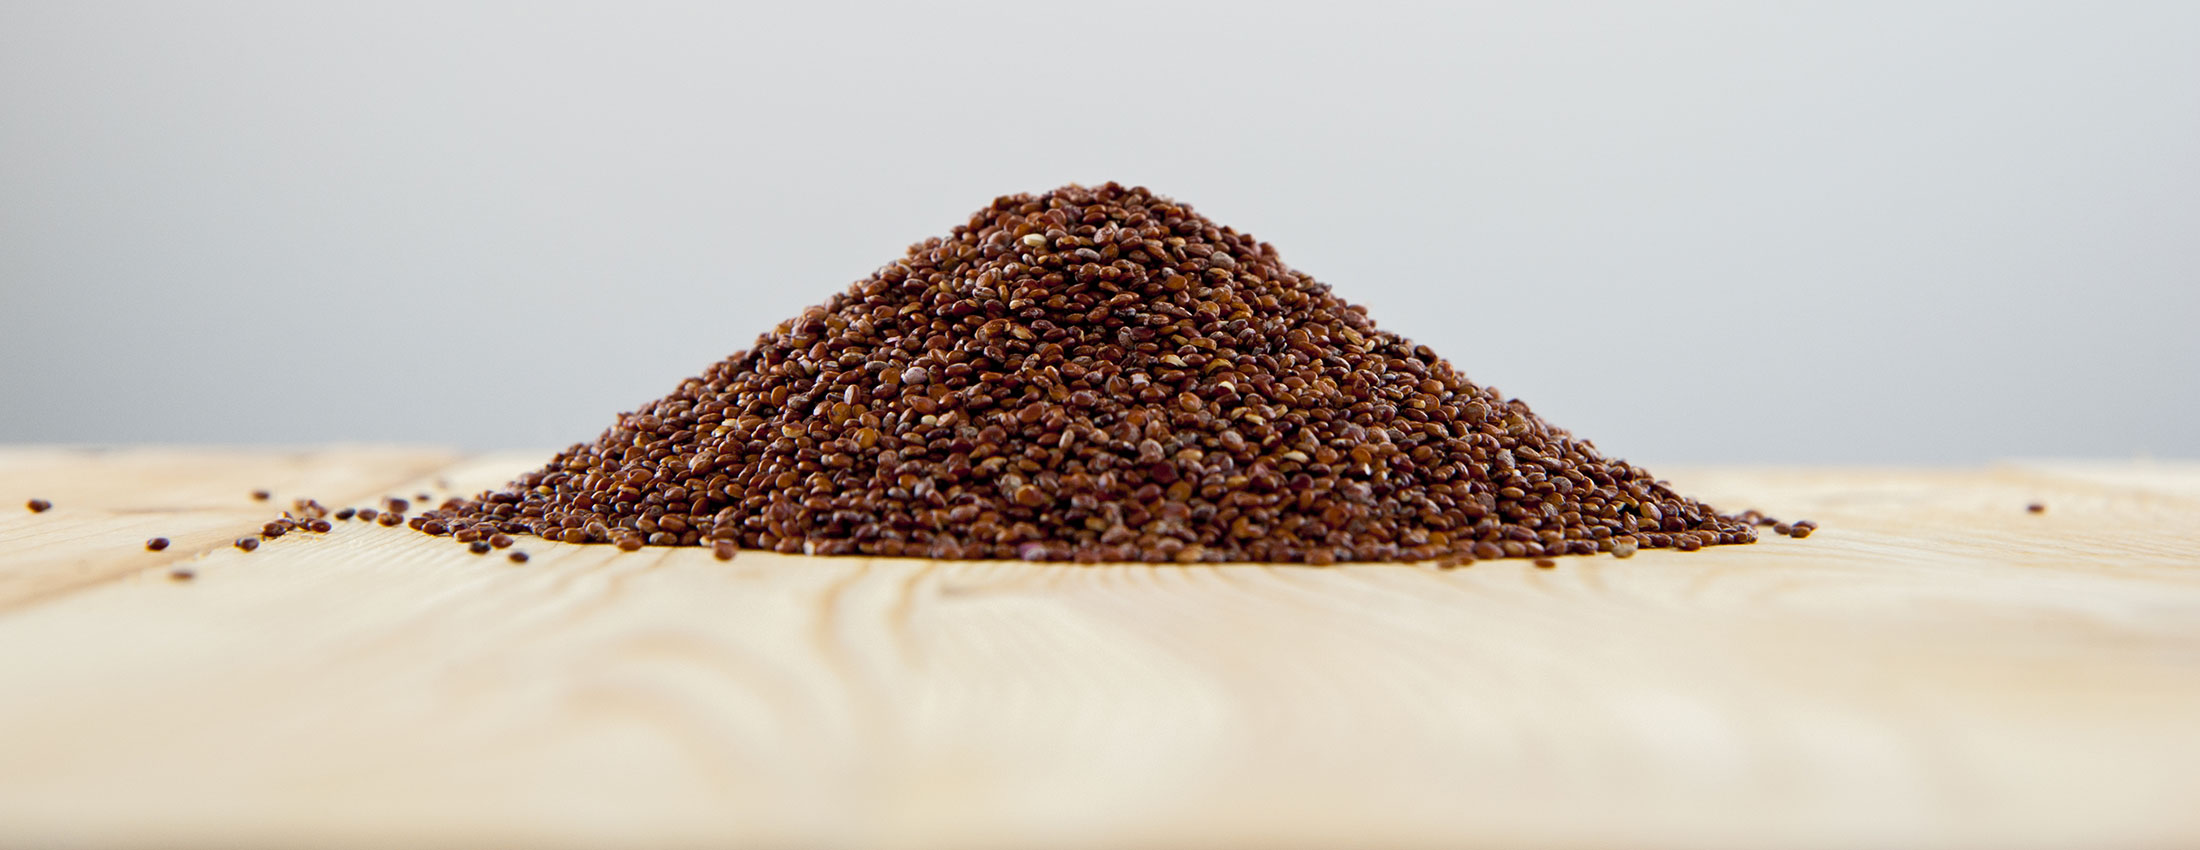 quinoa rouge biologique grains bolivie pseudocereale